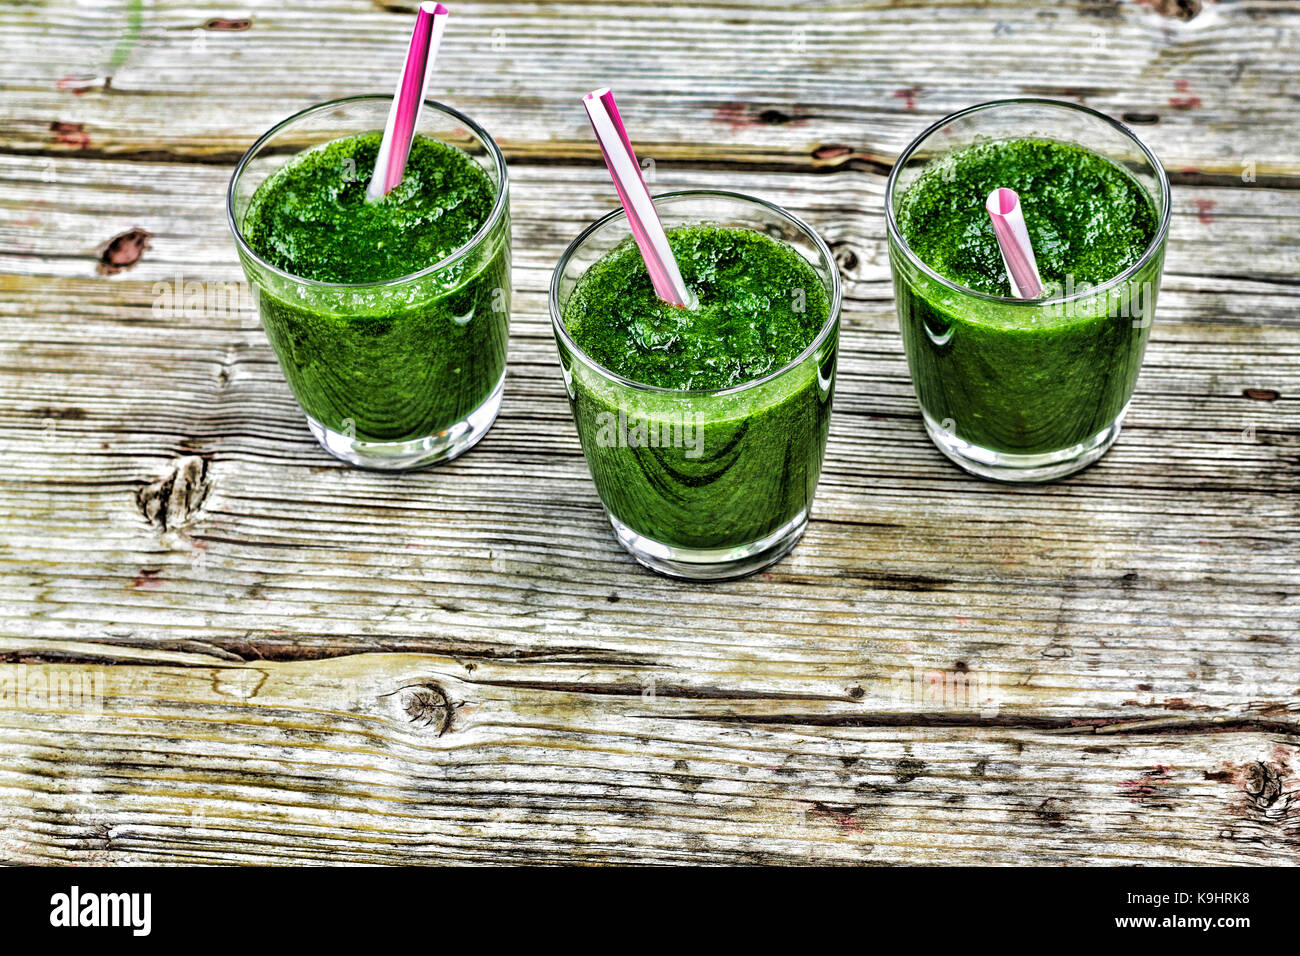 Detox drink from spinach and various green vegetables wooden background Stock Photo